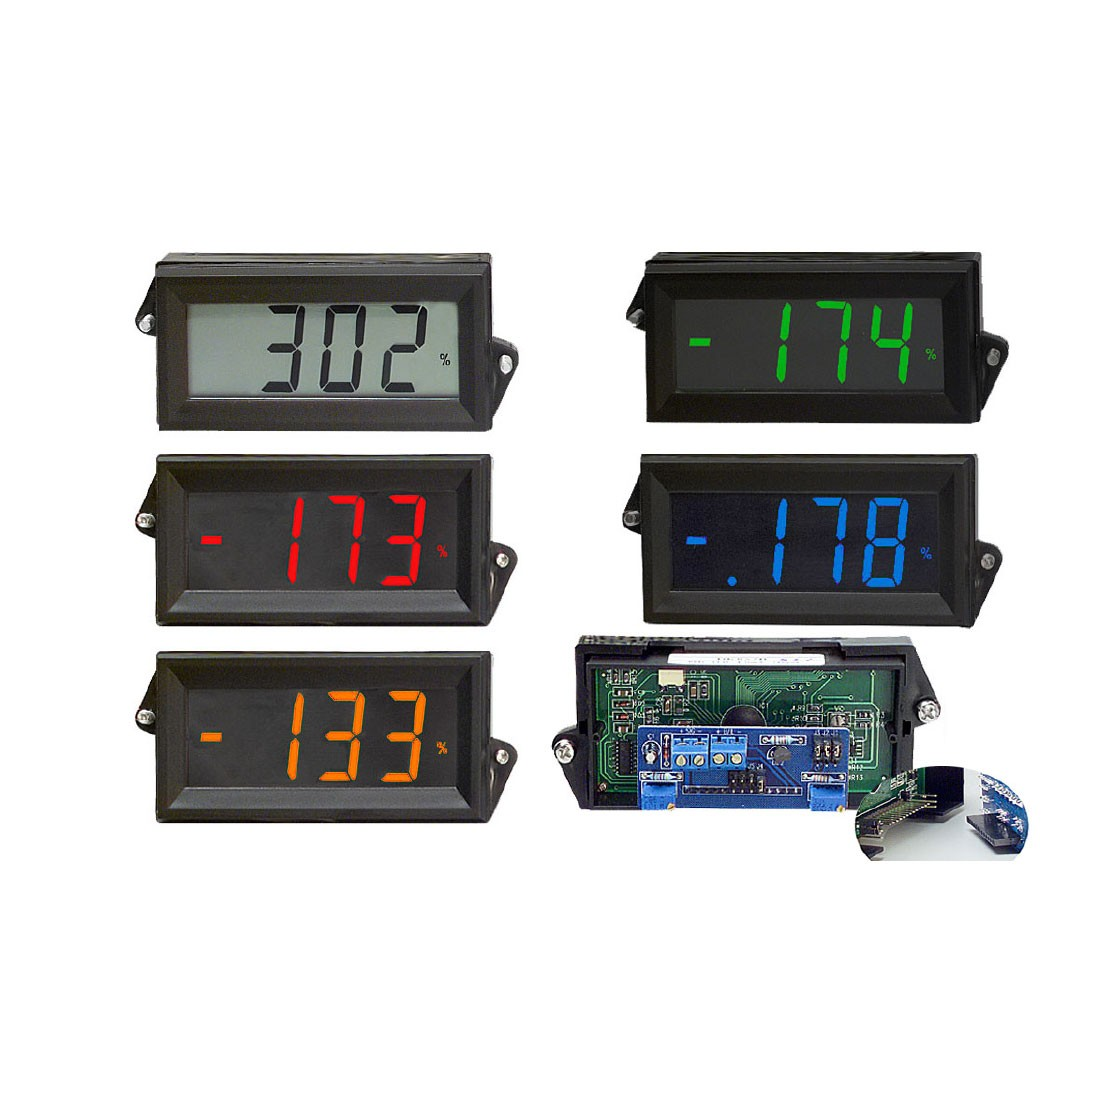 HVPI-800 Series Voltage Powered LCD Digital Panel Meter